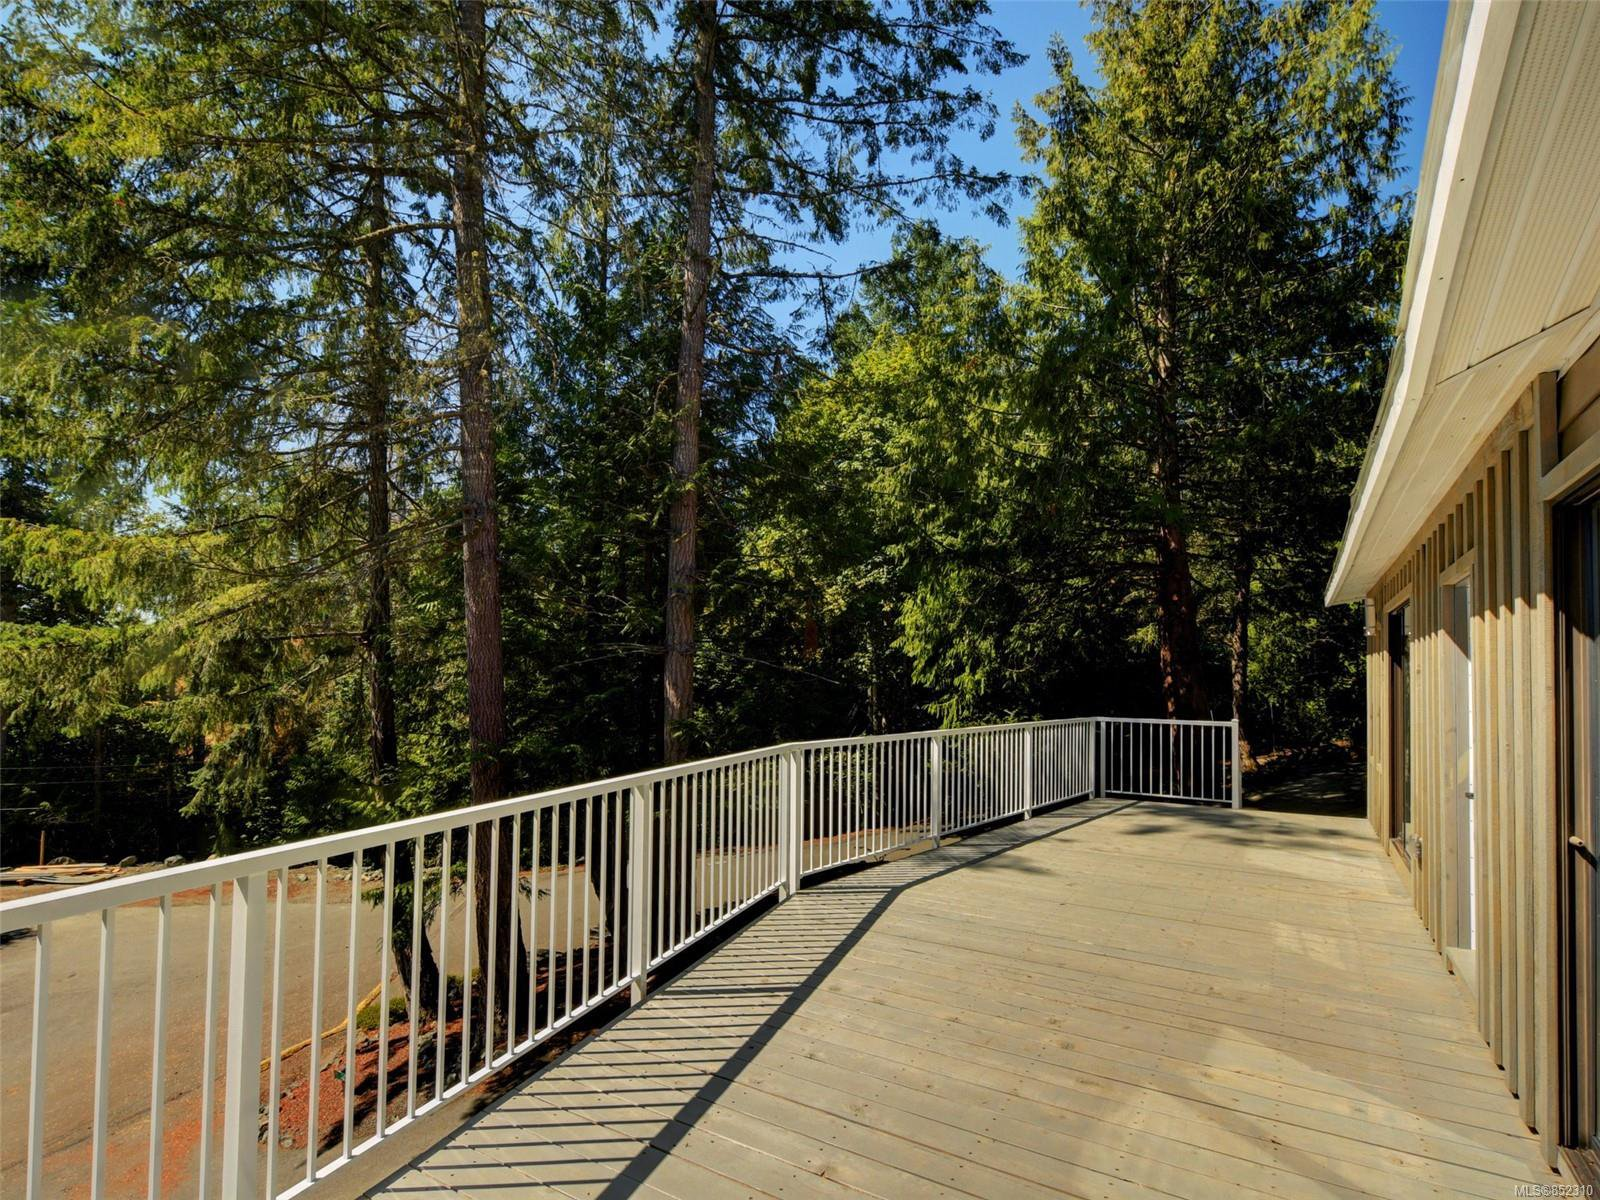 Photo 20: Photos: 94 5838 Blythwood Rd in : Sk Saseenos Manufactured Home for sale (Sooke)  : MLS®# 852310